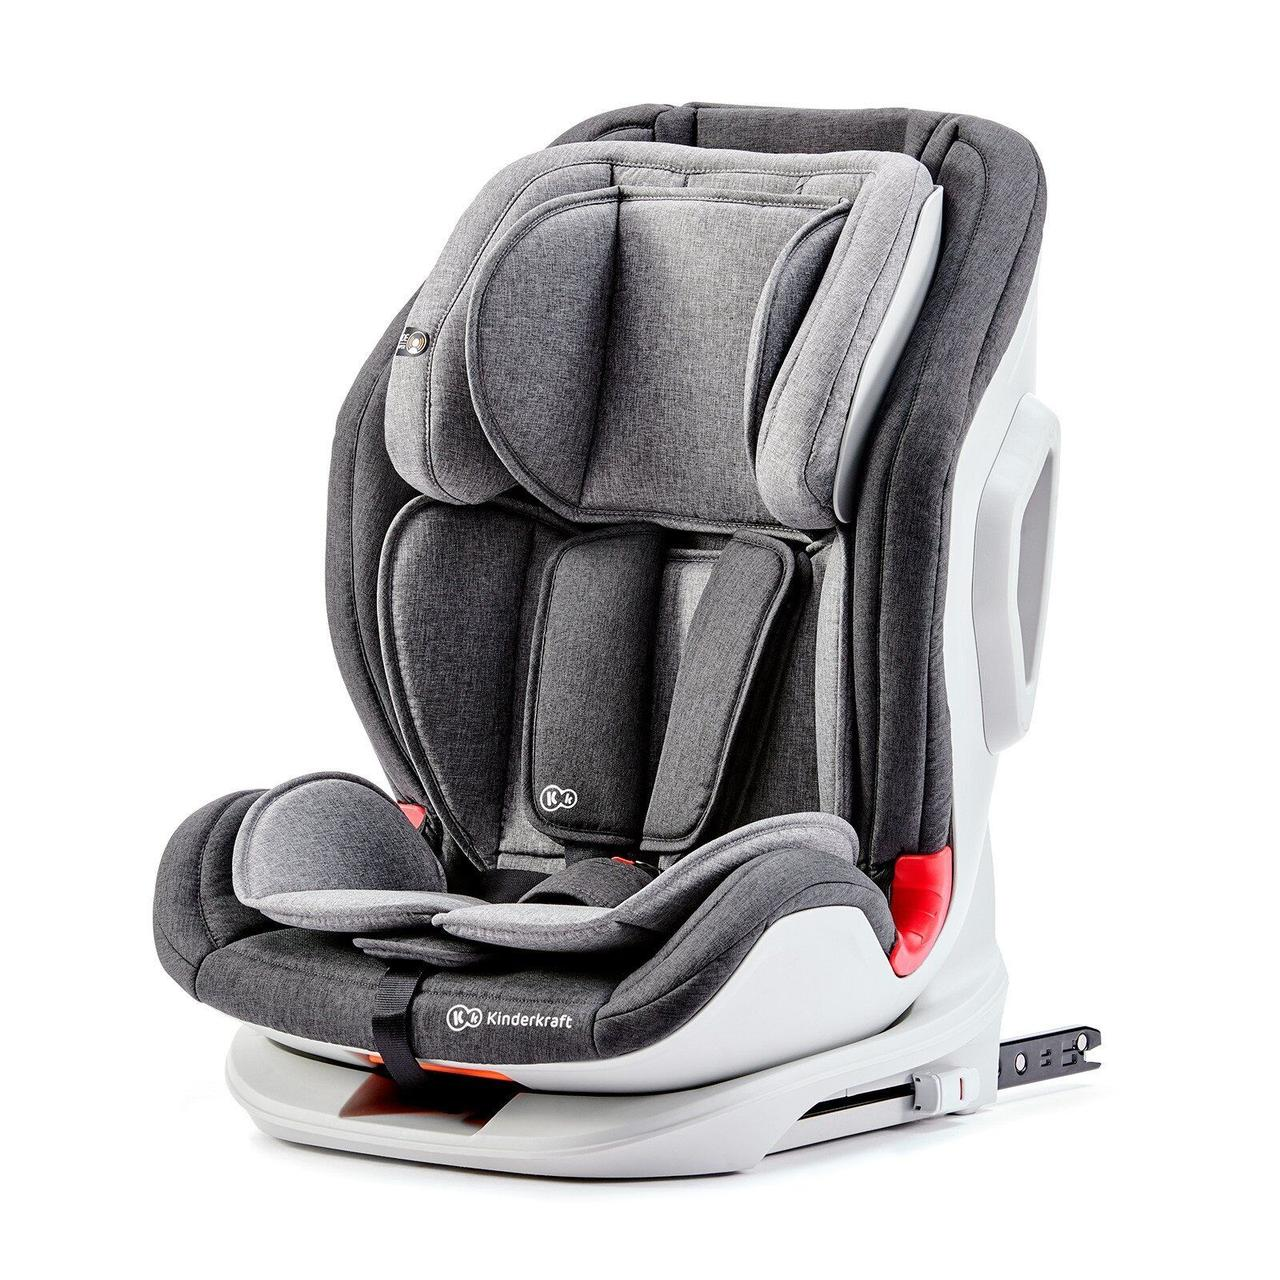 Автокресло Kinderkraft Oneto3 Black/Gray